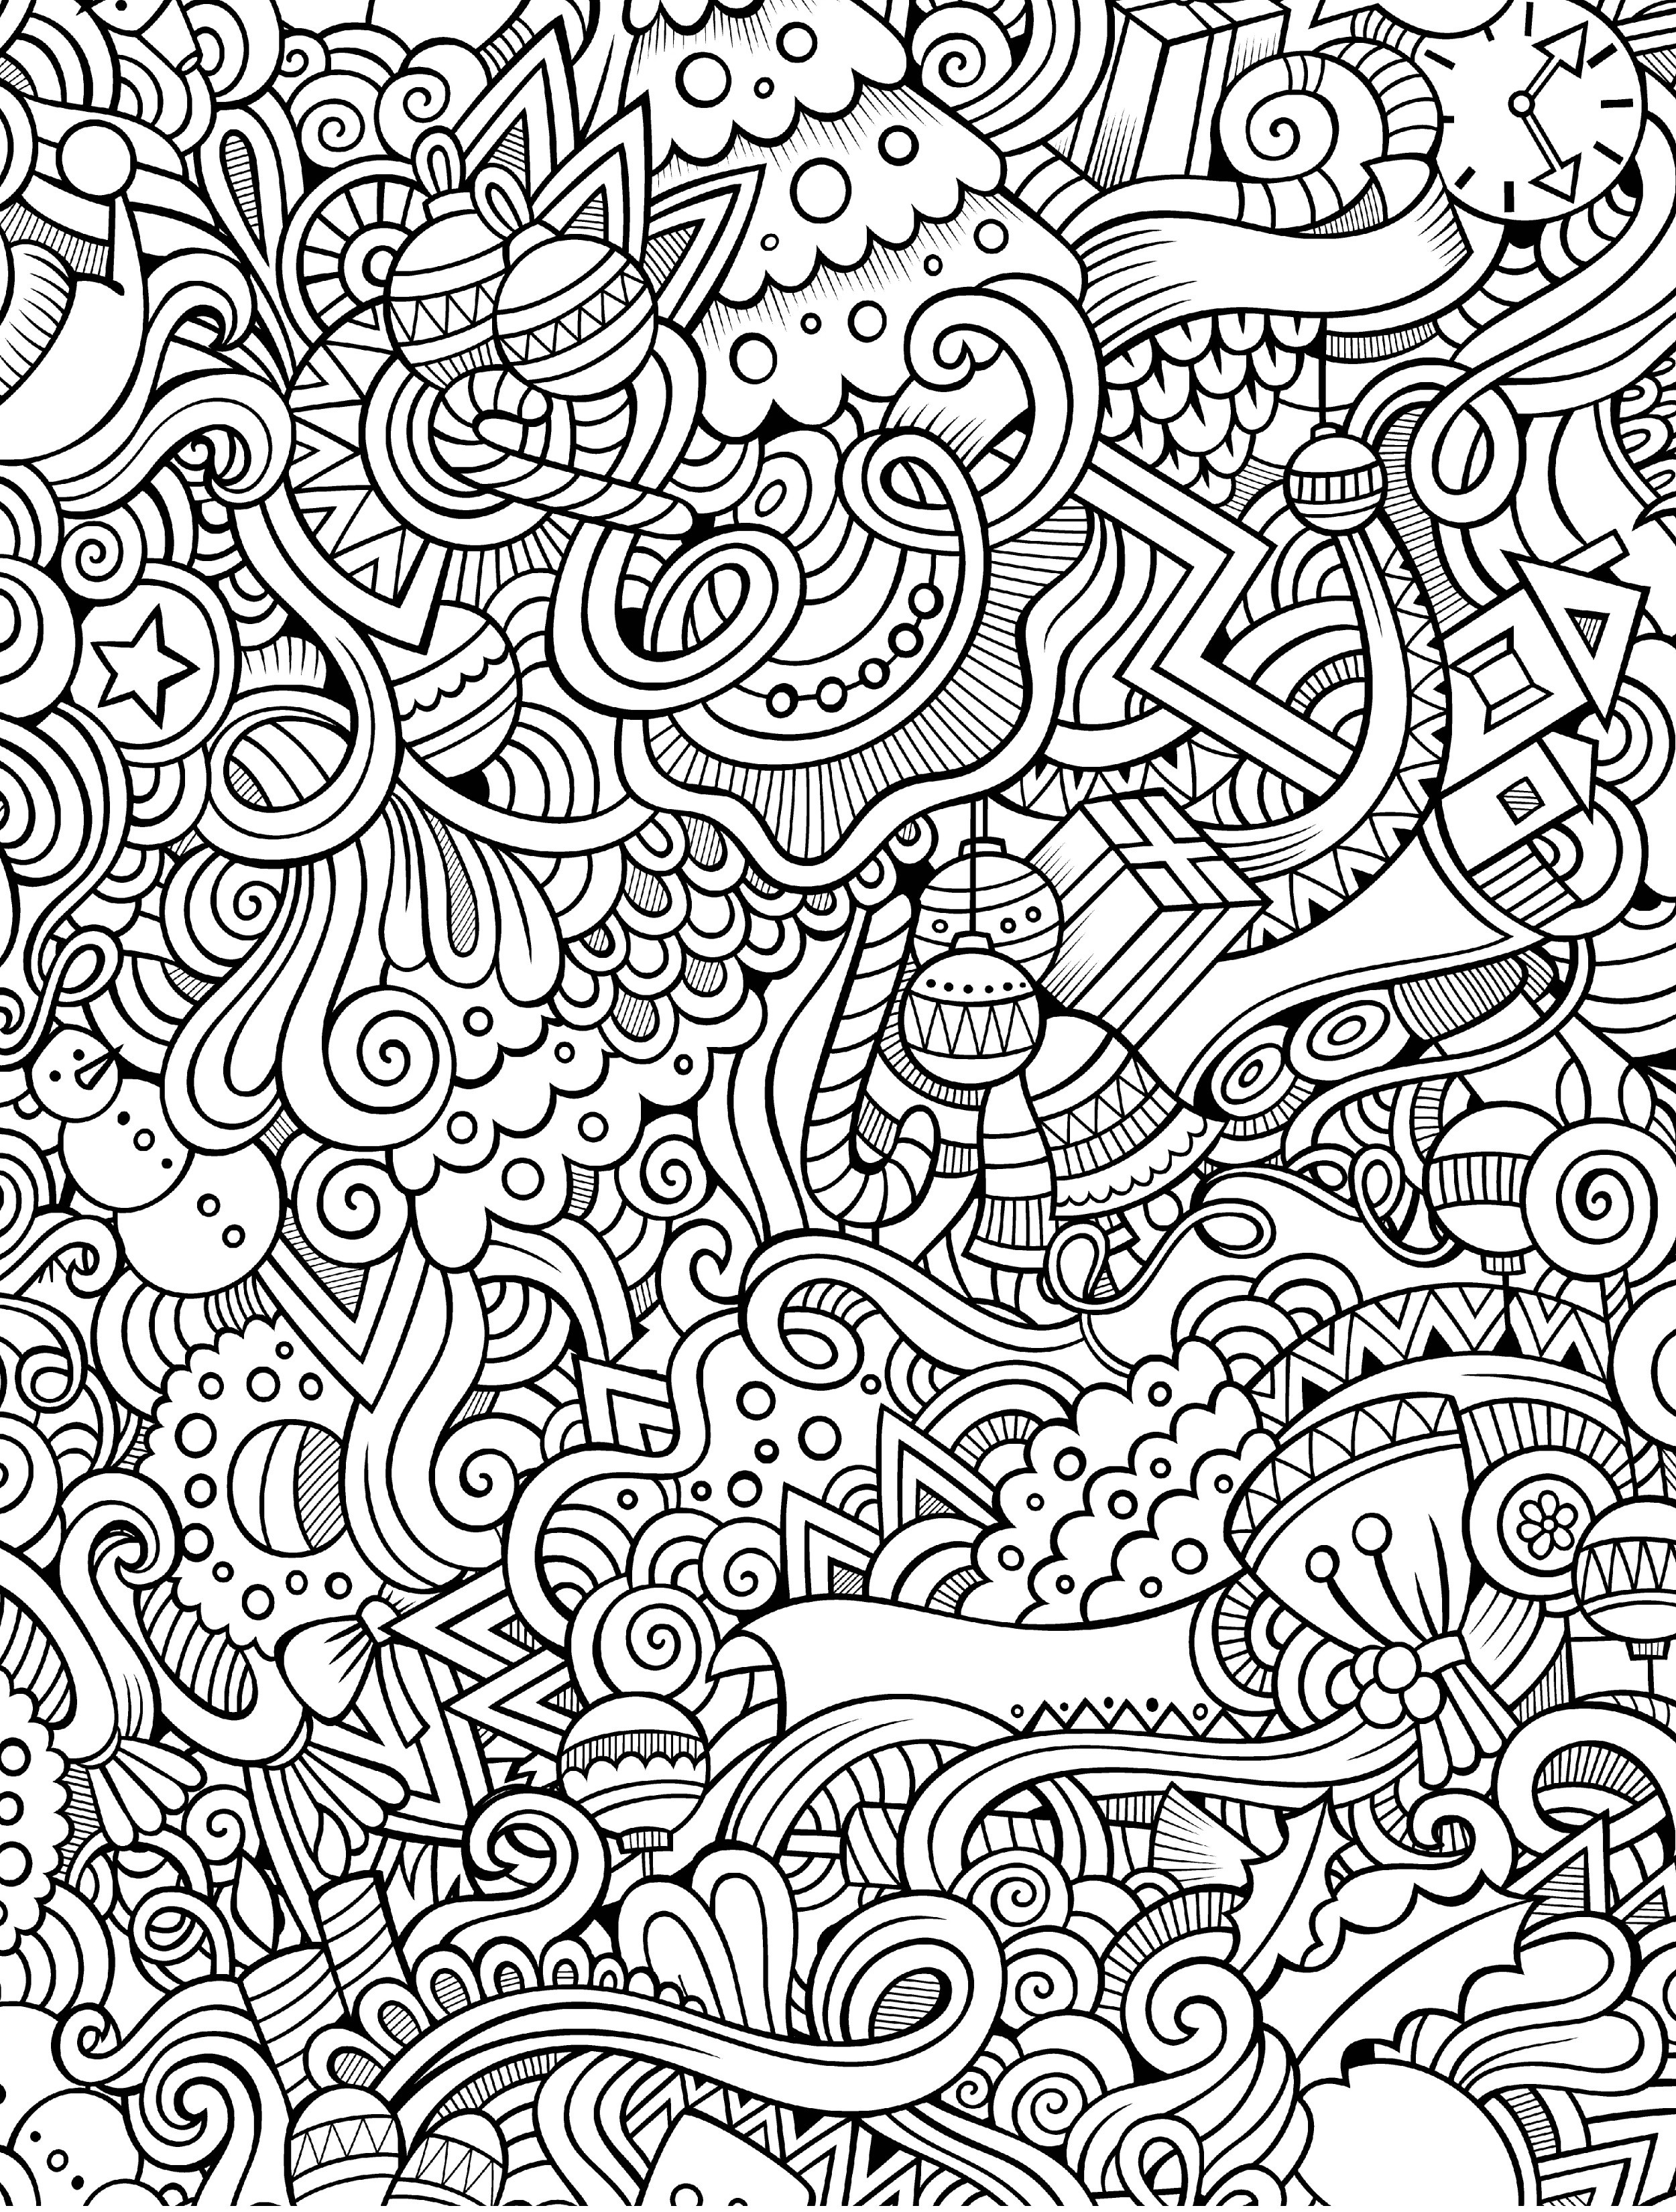 Best ideas about Free Coloring Pages Printable Christmas . Save or Pin 10 Free Printable Holiday Adult Coloring Pages Now.